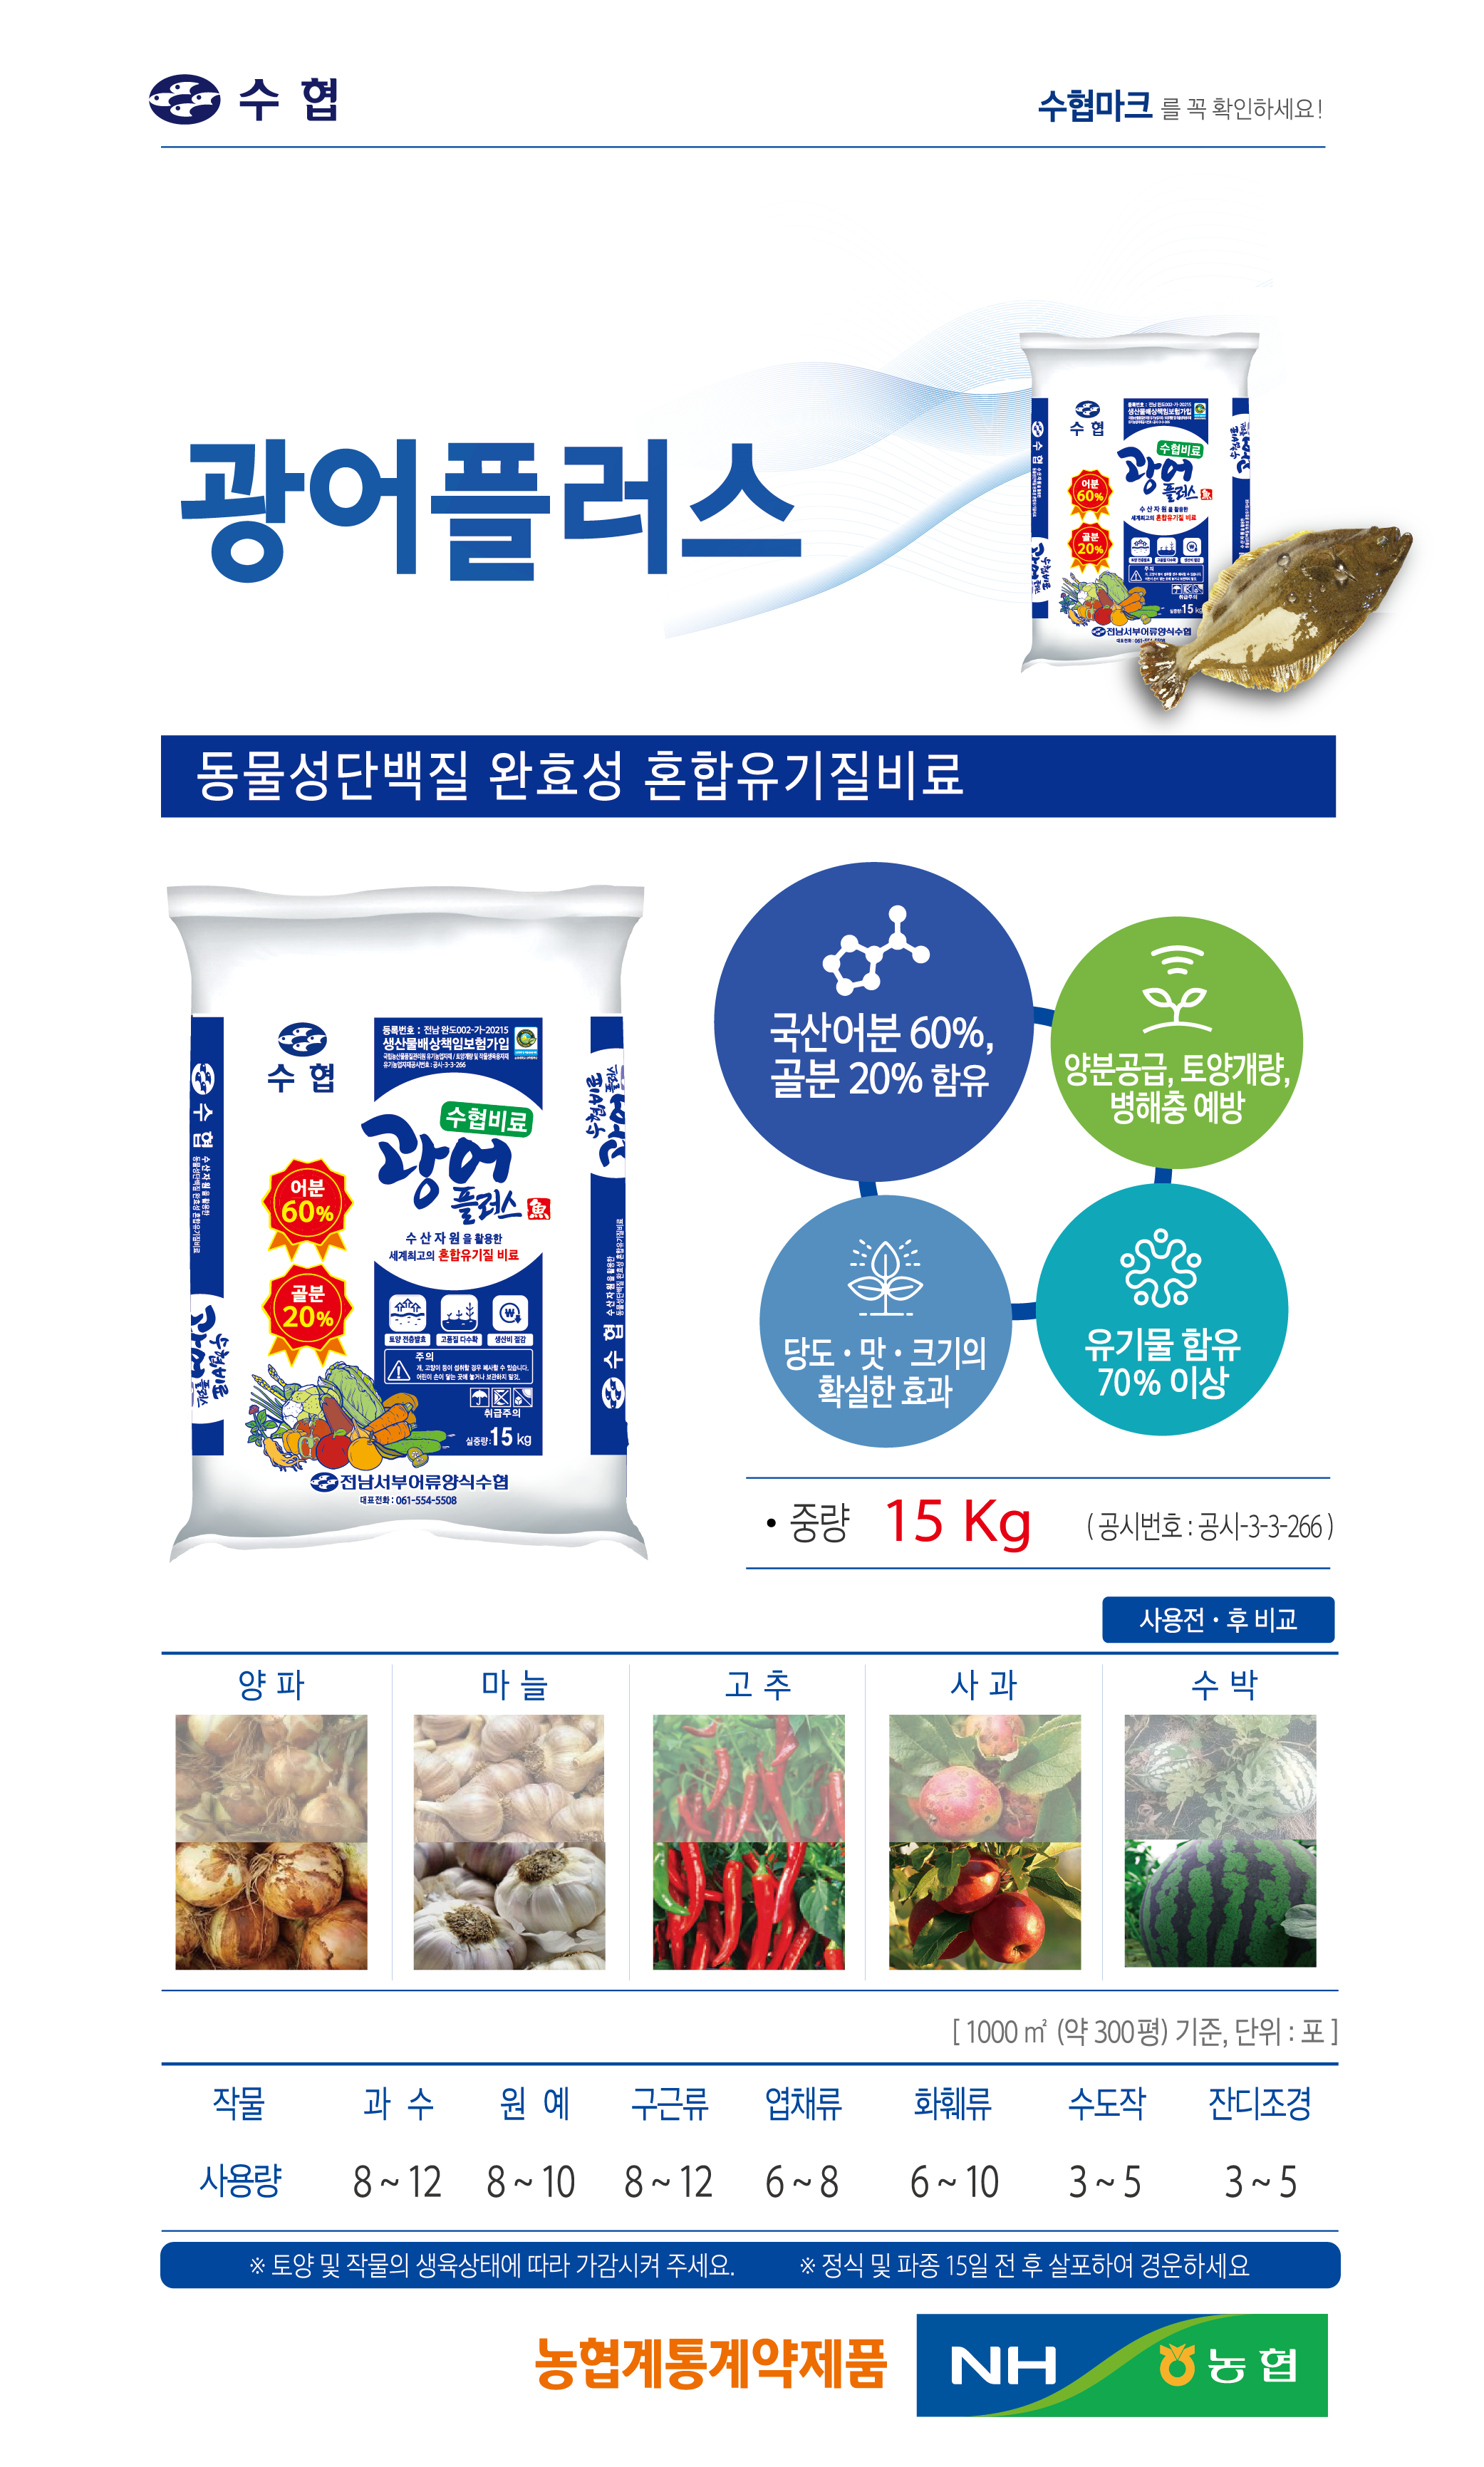 http://suhyup2019.handpr.kr/bs/se2/imgup/1574654009d02.png